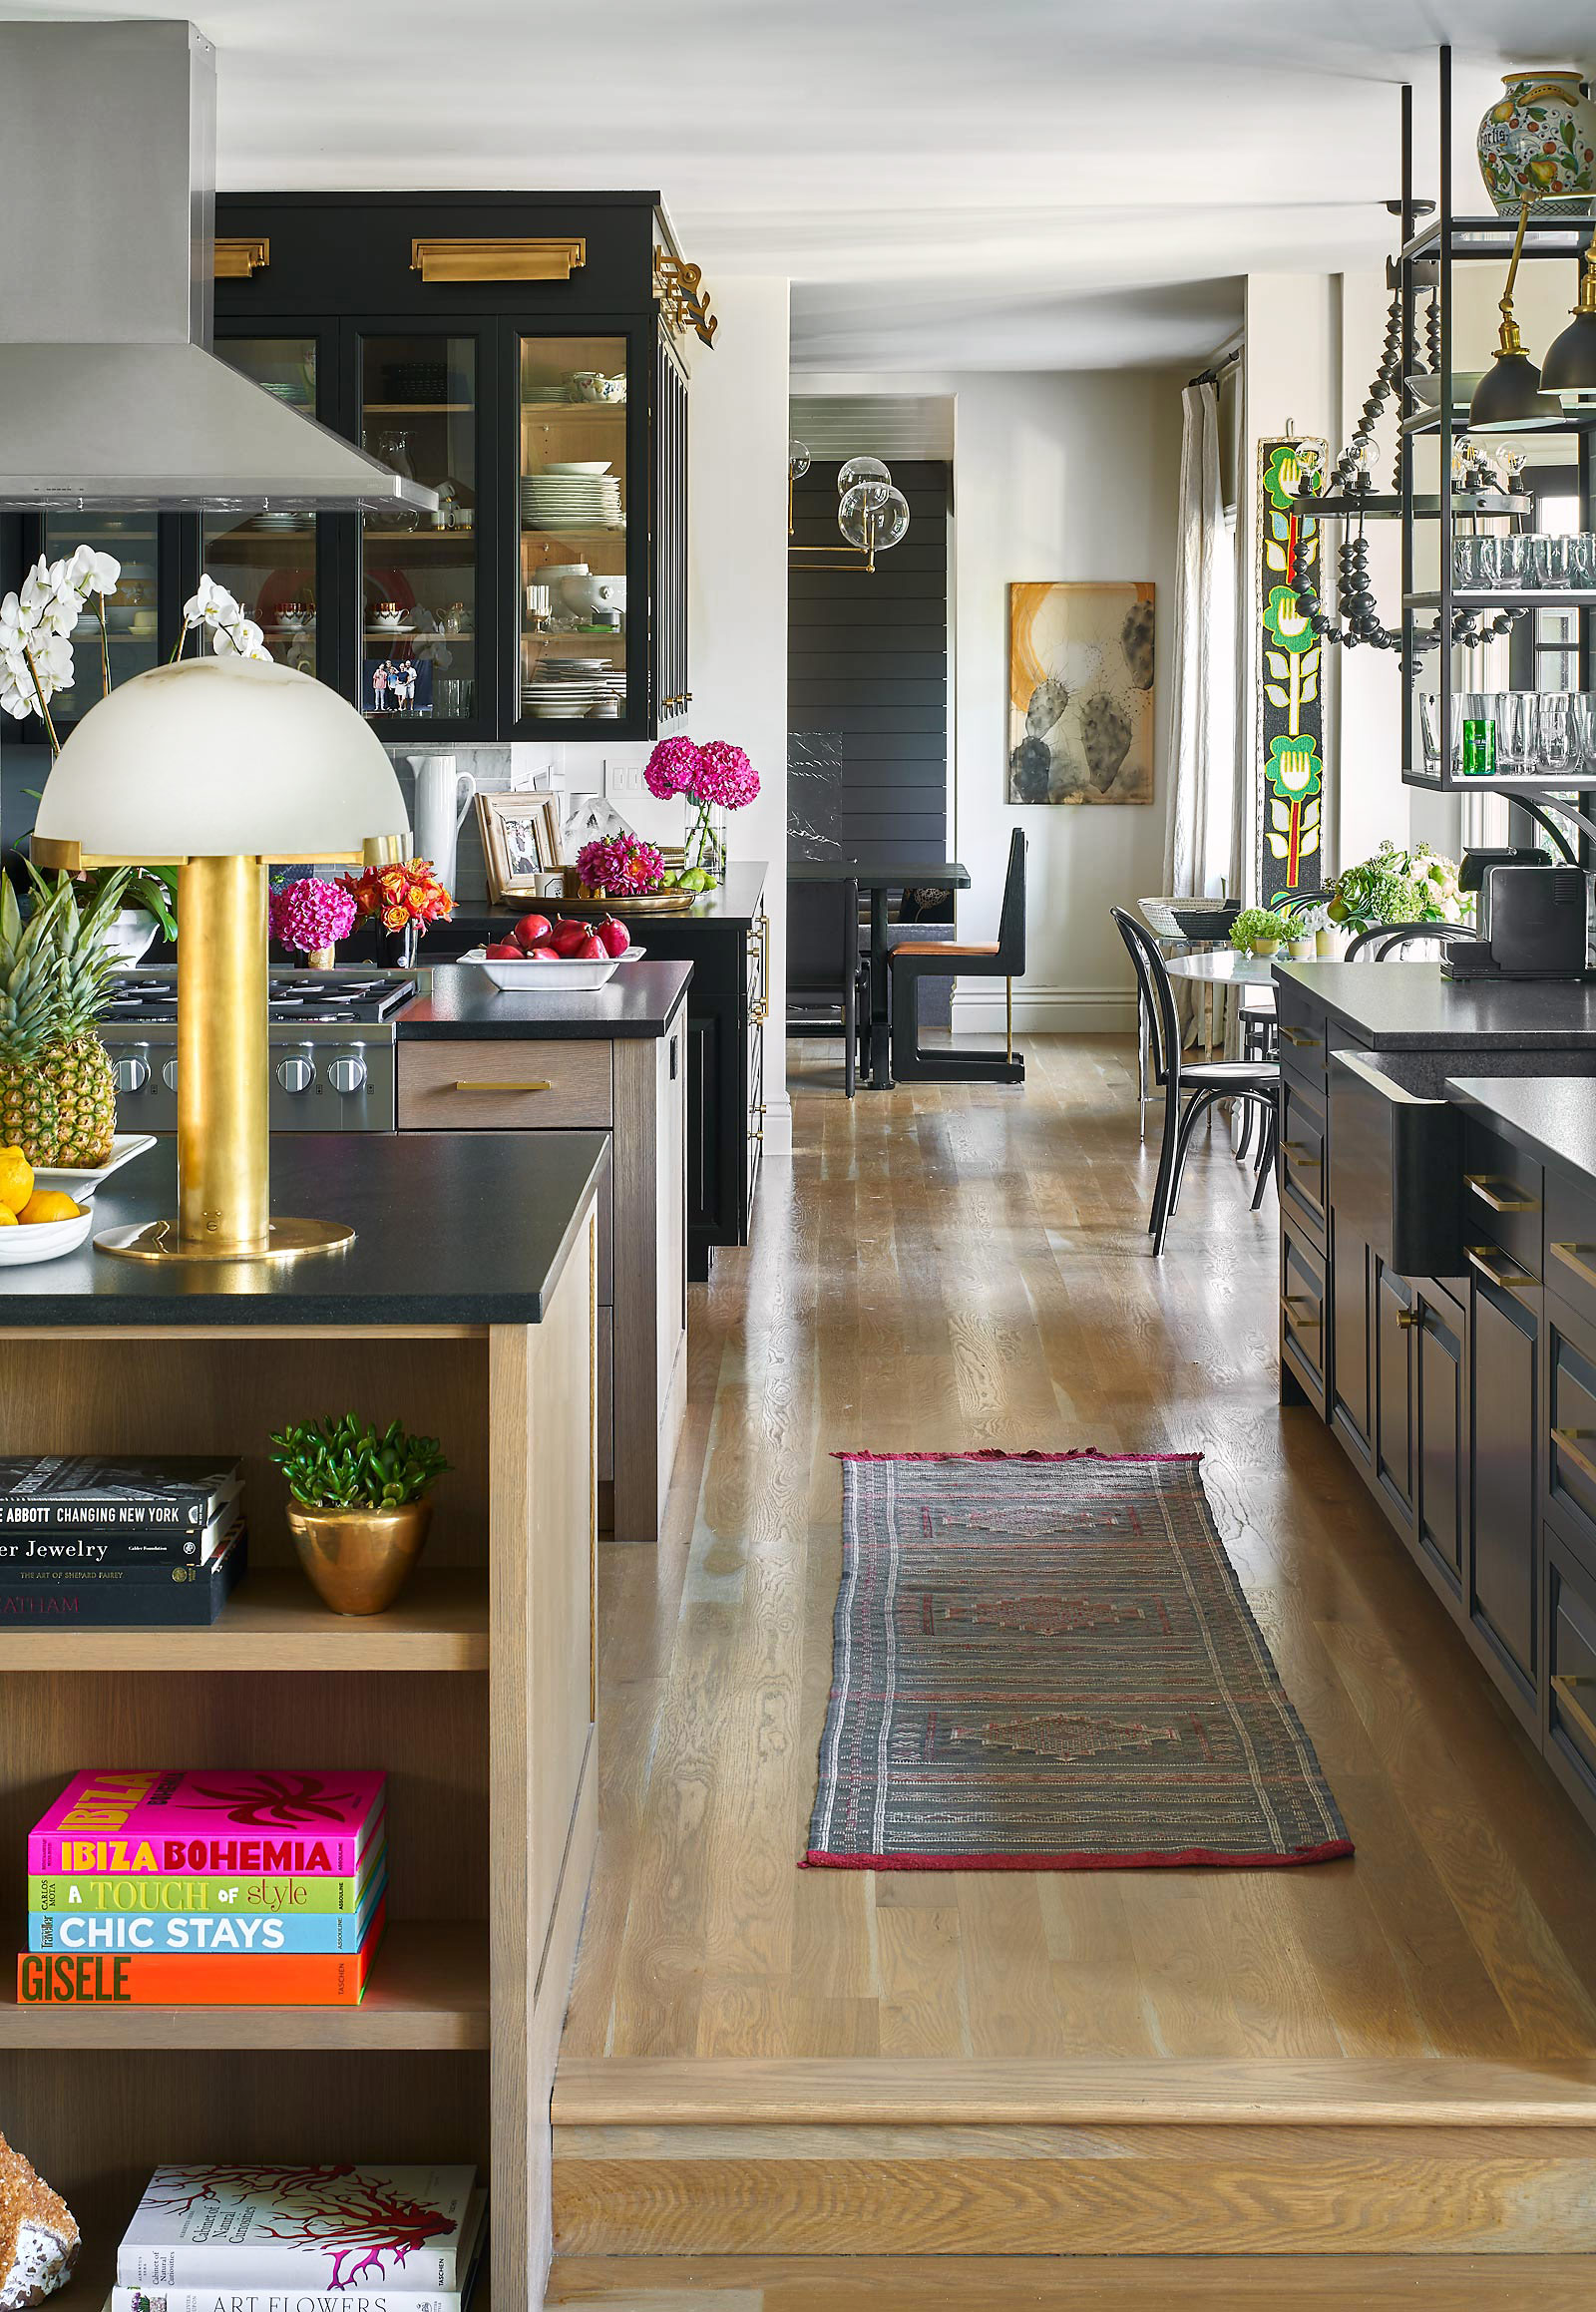 David Patterson Photography, photography of interiors